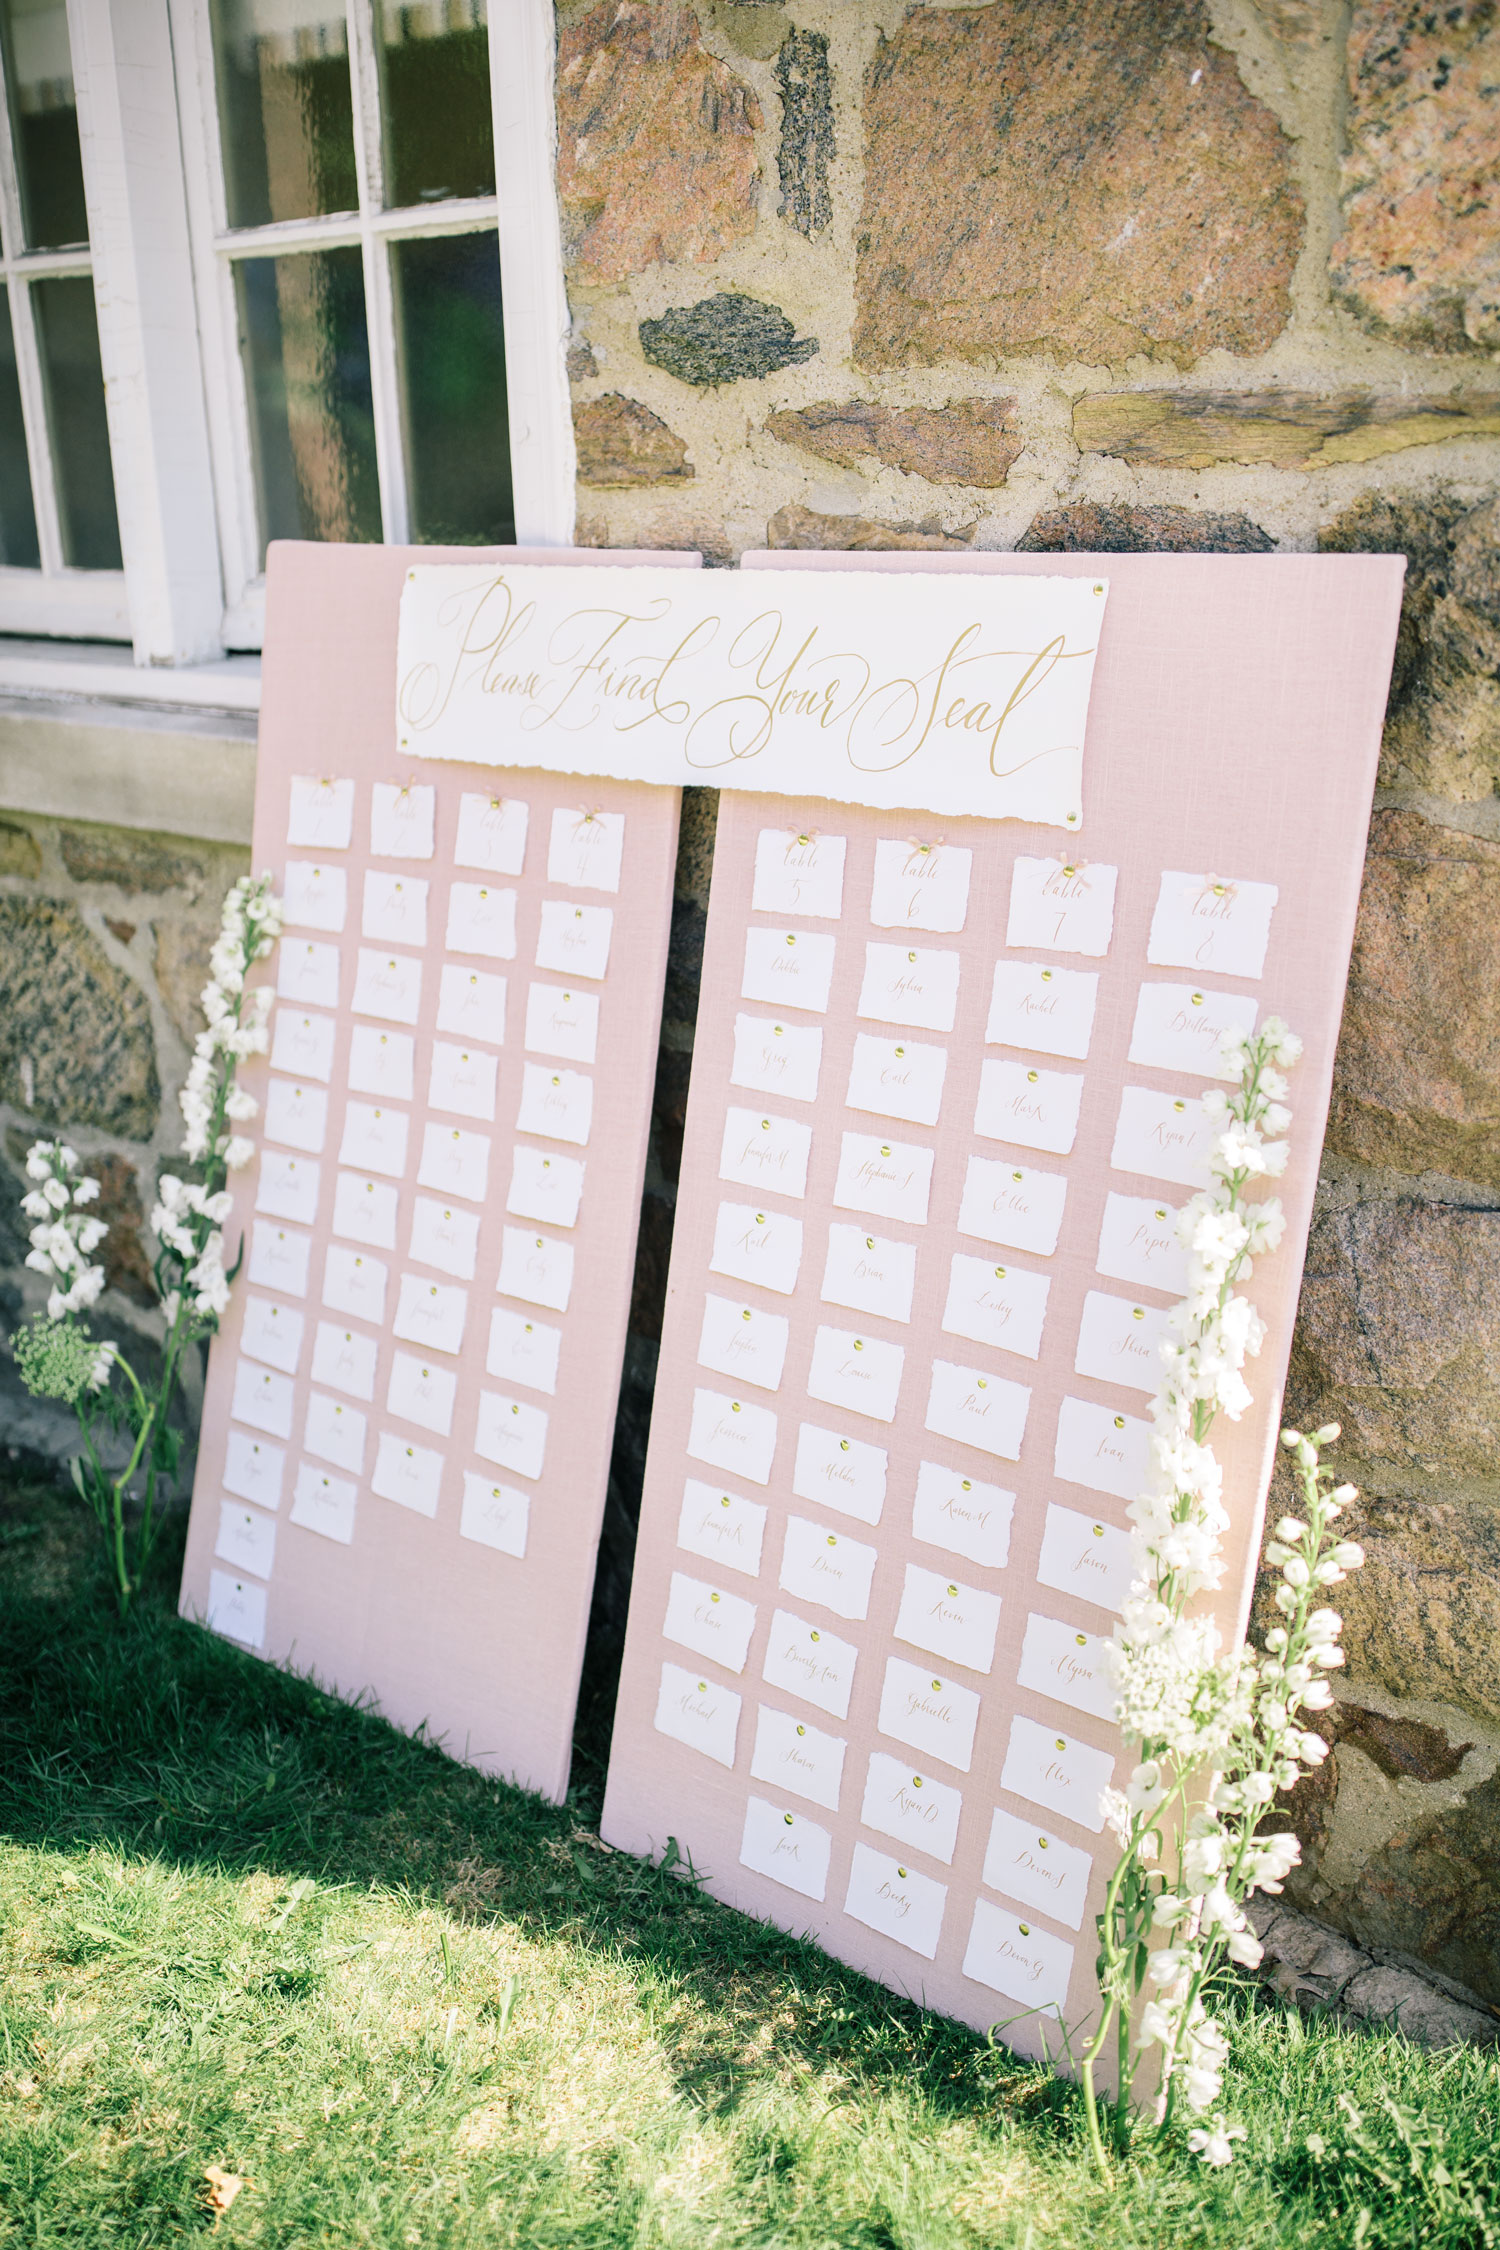 My diy wedding seating chart the blondielocks life style step 5 using a thin silk ribbon tie a bow around each table number pin this is optional but i think it looks really cute and helps define the table solutioingenieria Image collections